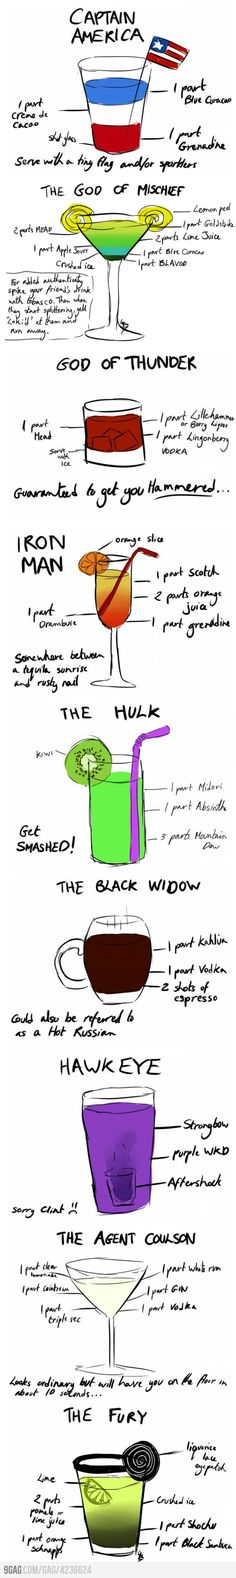 AVENGERS COCKTAILS @superwhit2003 we should make these in secret at your bachelorette :)